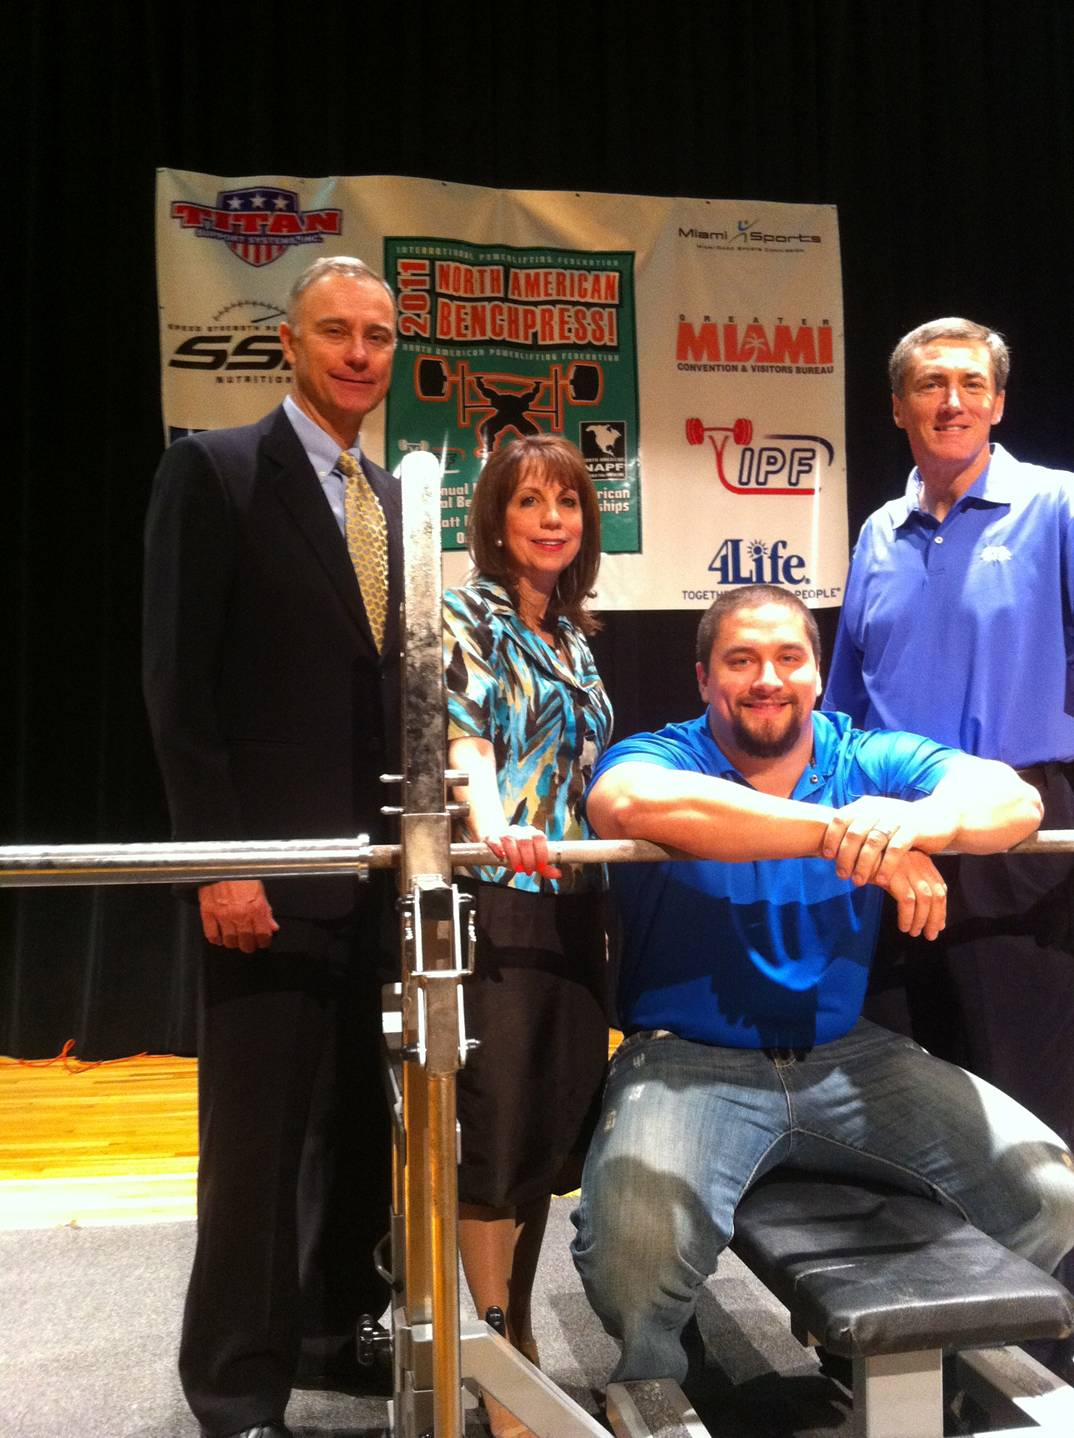 foto Team 4Life Member Competes in Arnold Classic